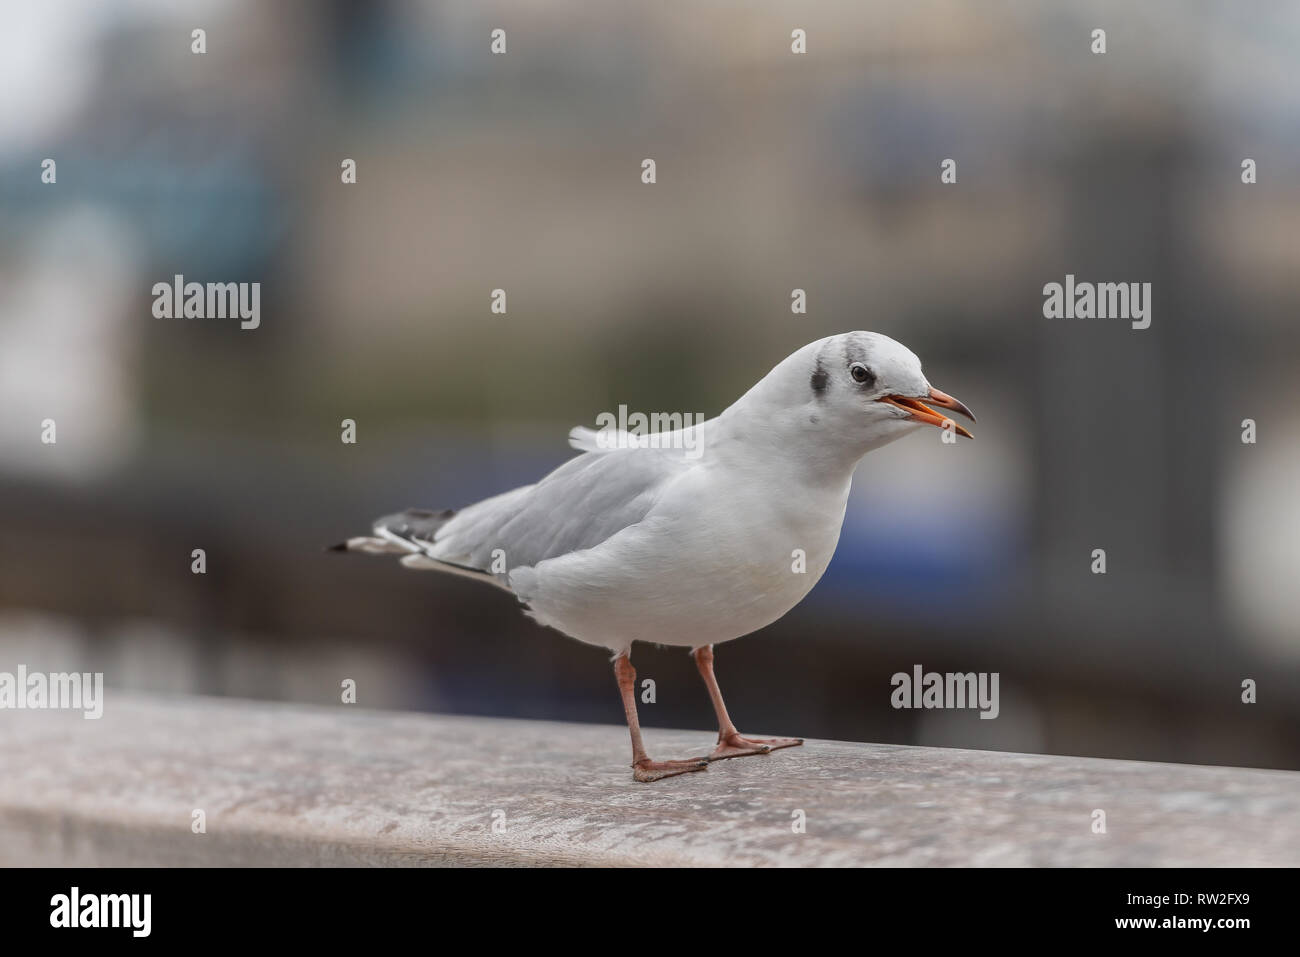 Black headed gull at the side of the River - Stock Image